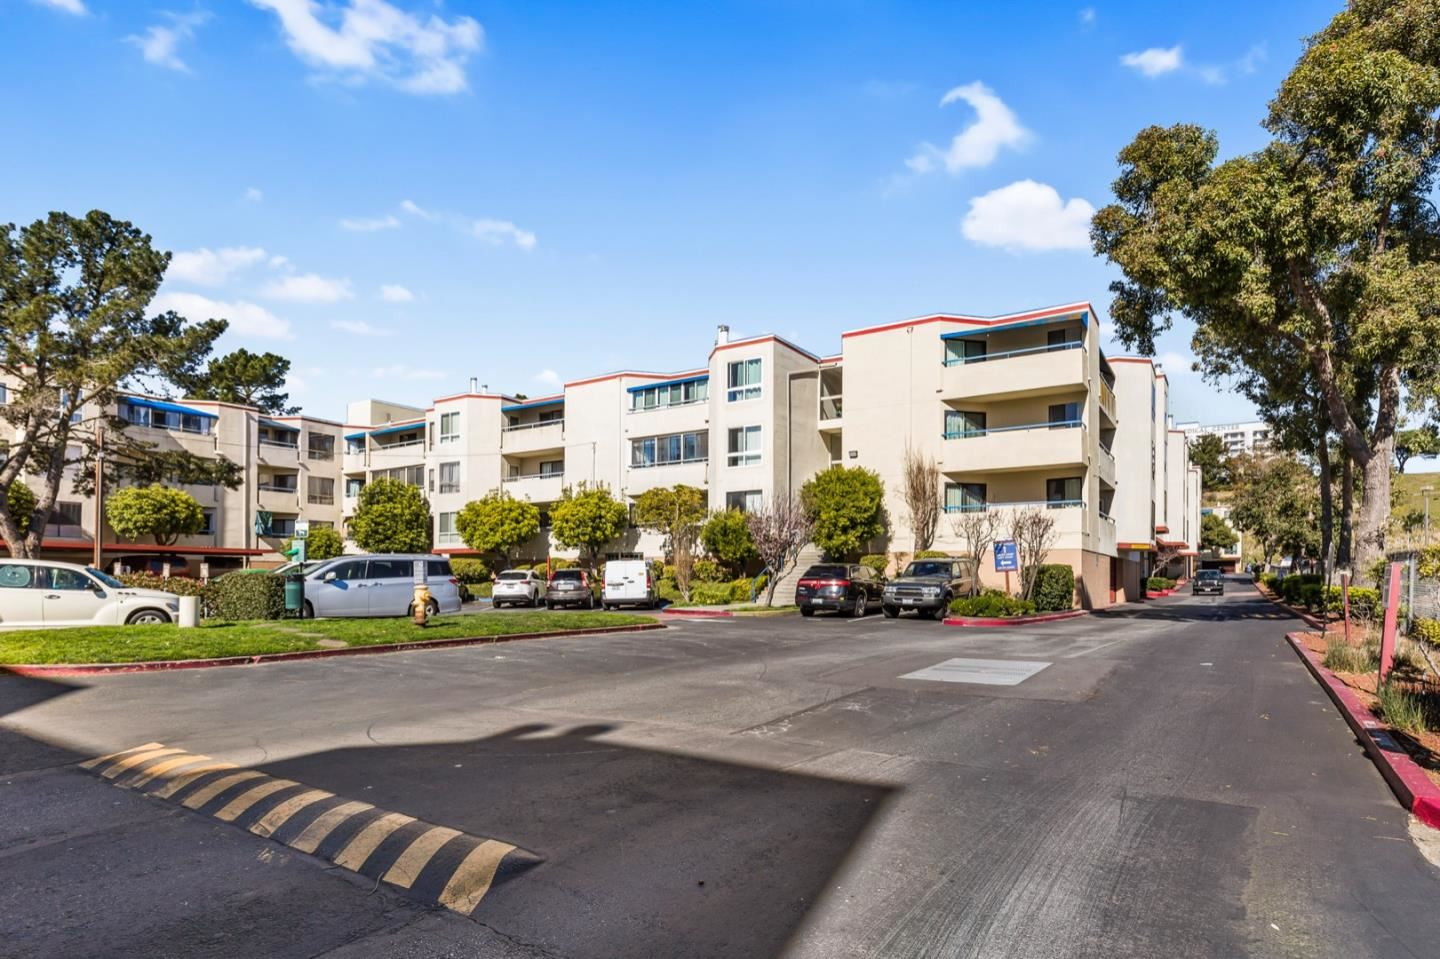 Photo for 1551 Southgate AVE 333 #333, DALY CITY, CA 94015 (MLS # ML81782465)